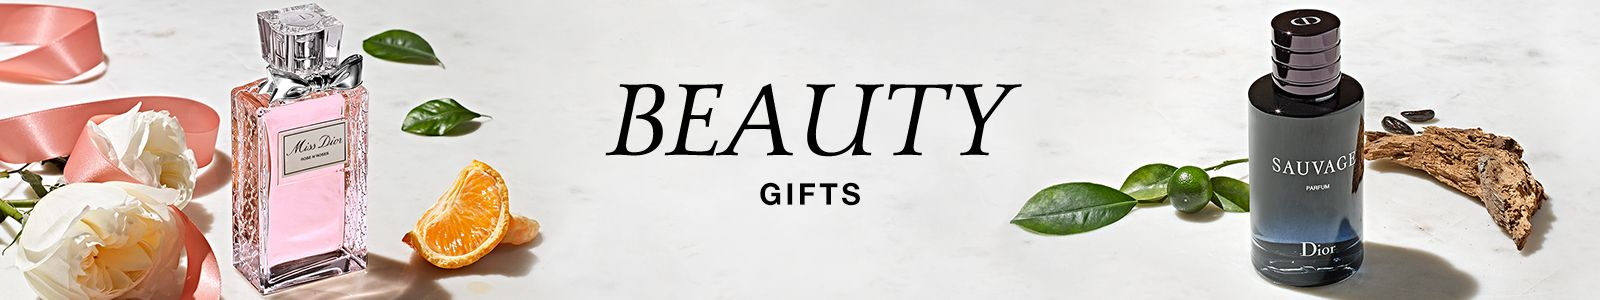 Beauty, Gifts